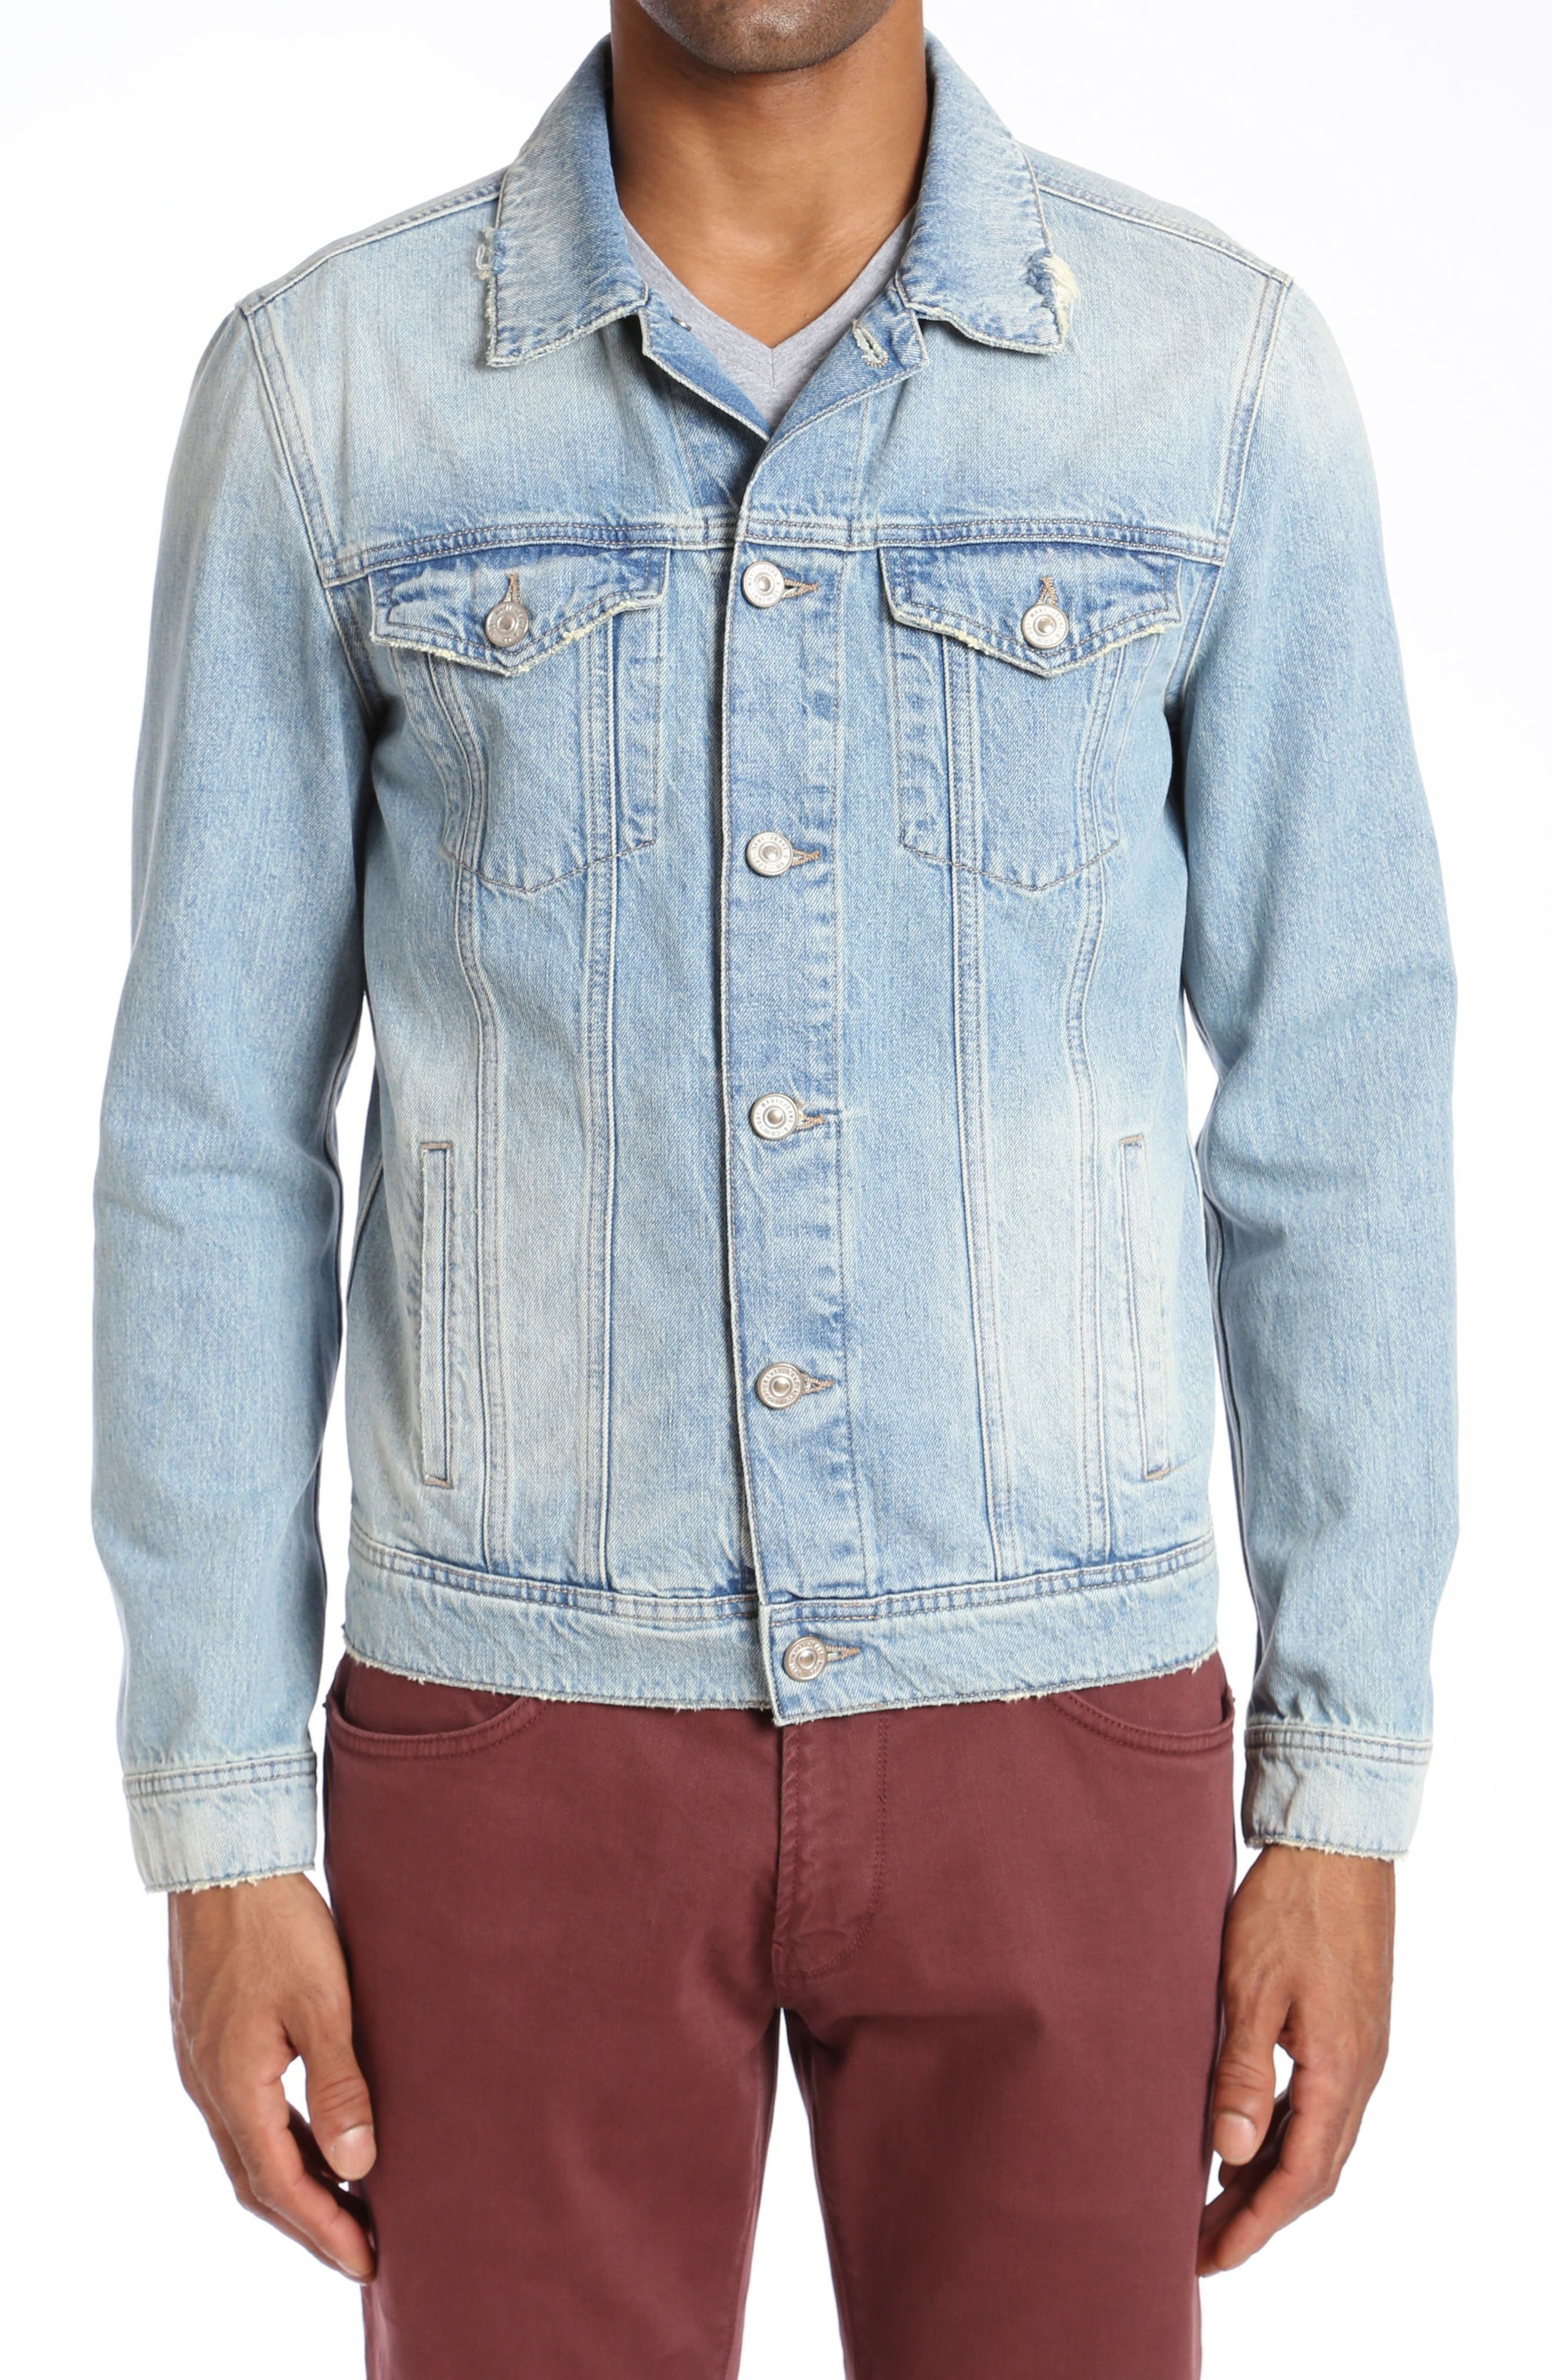 Frank Denim Jacket,                         Main,                         color, Bleach Vintage Rigid